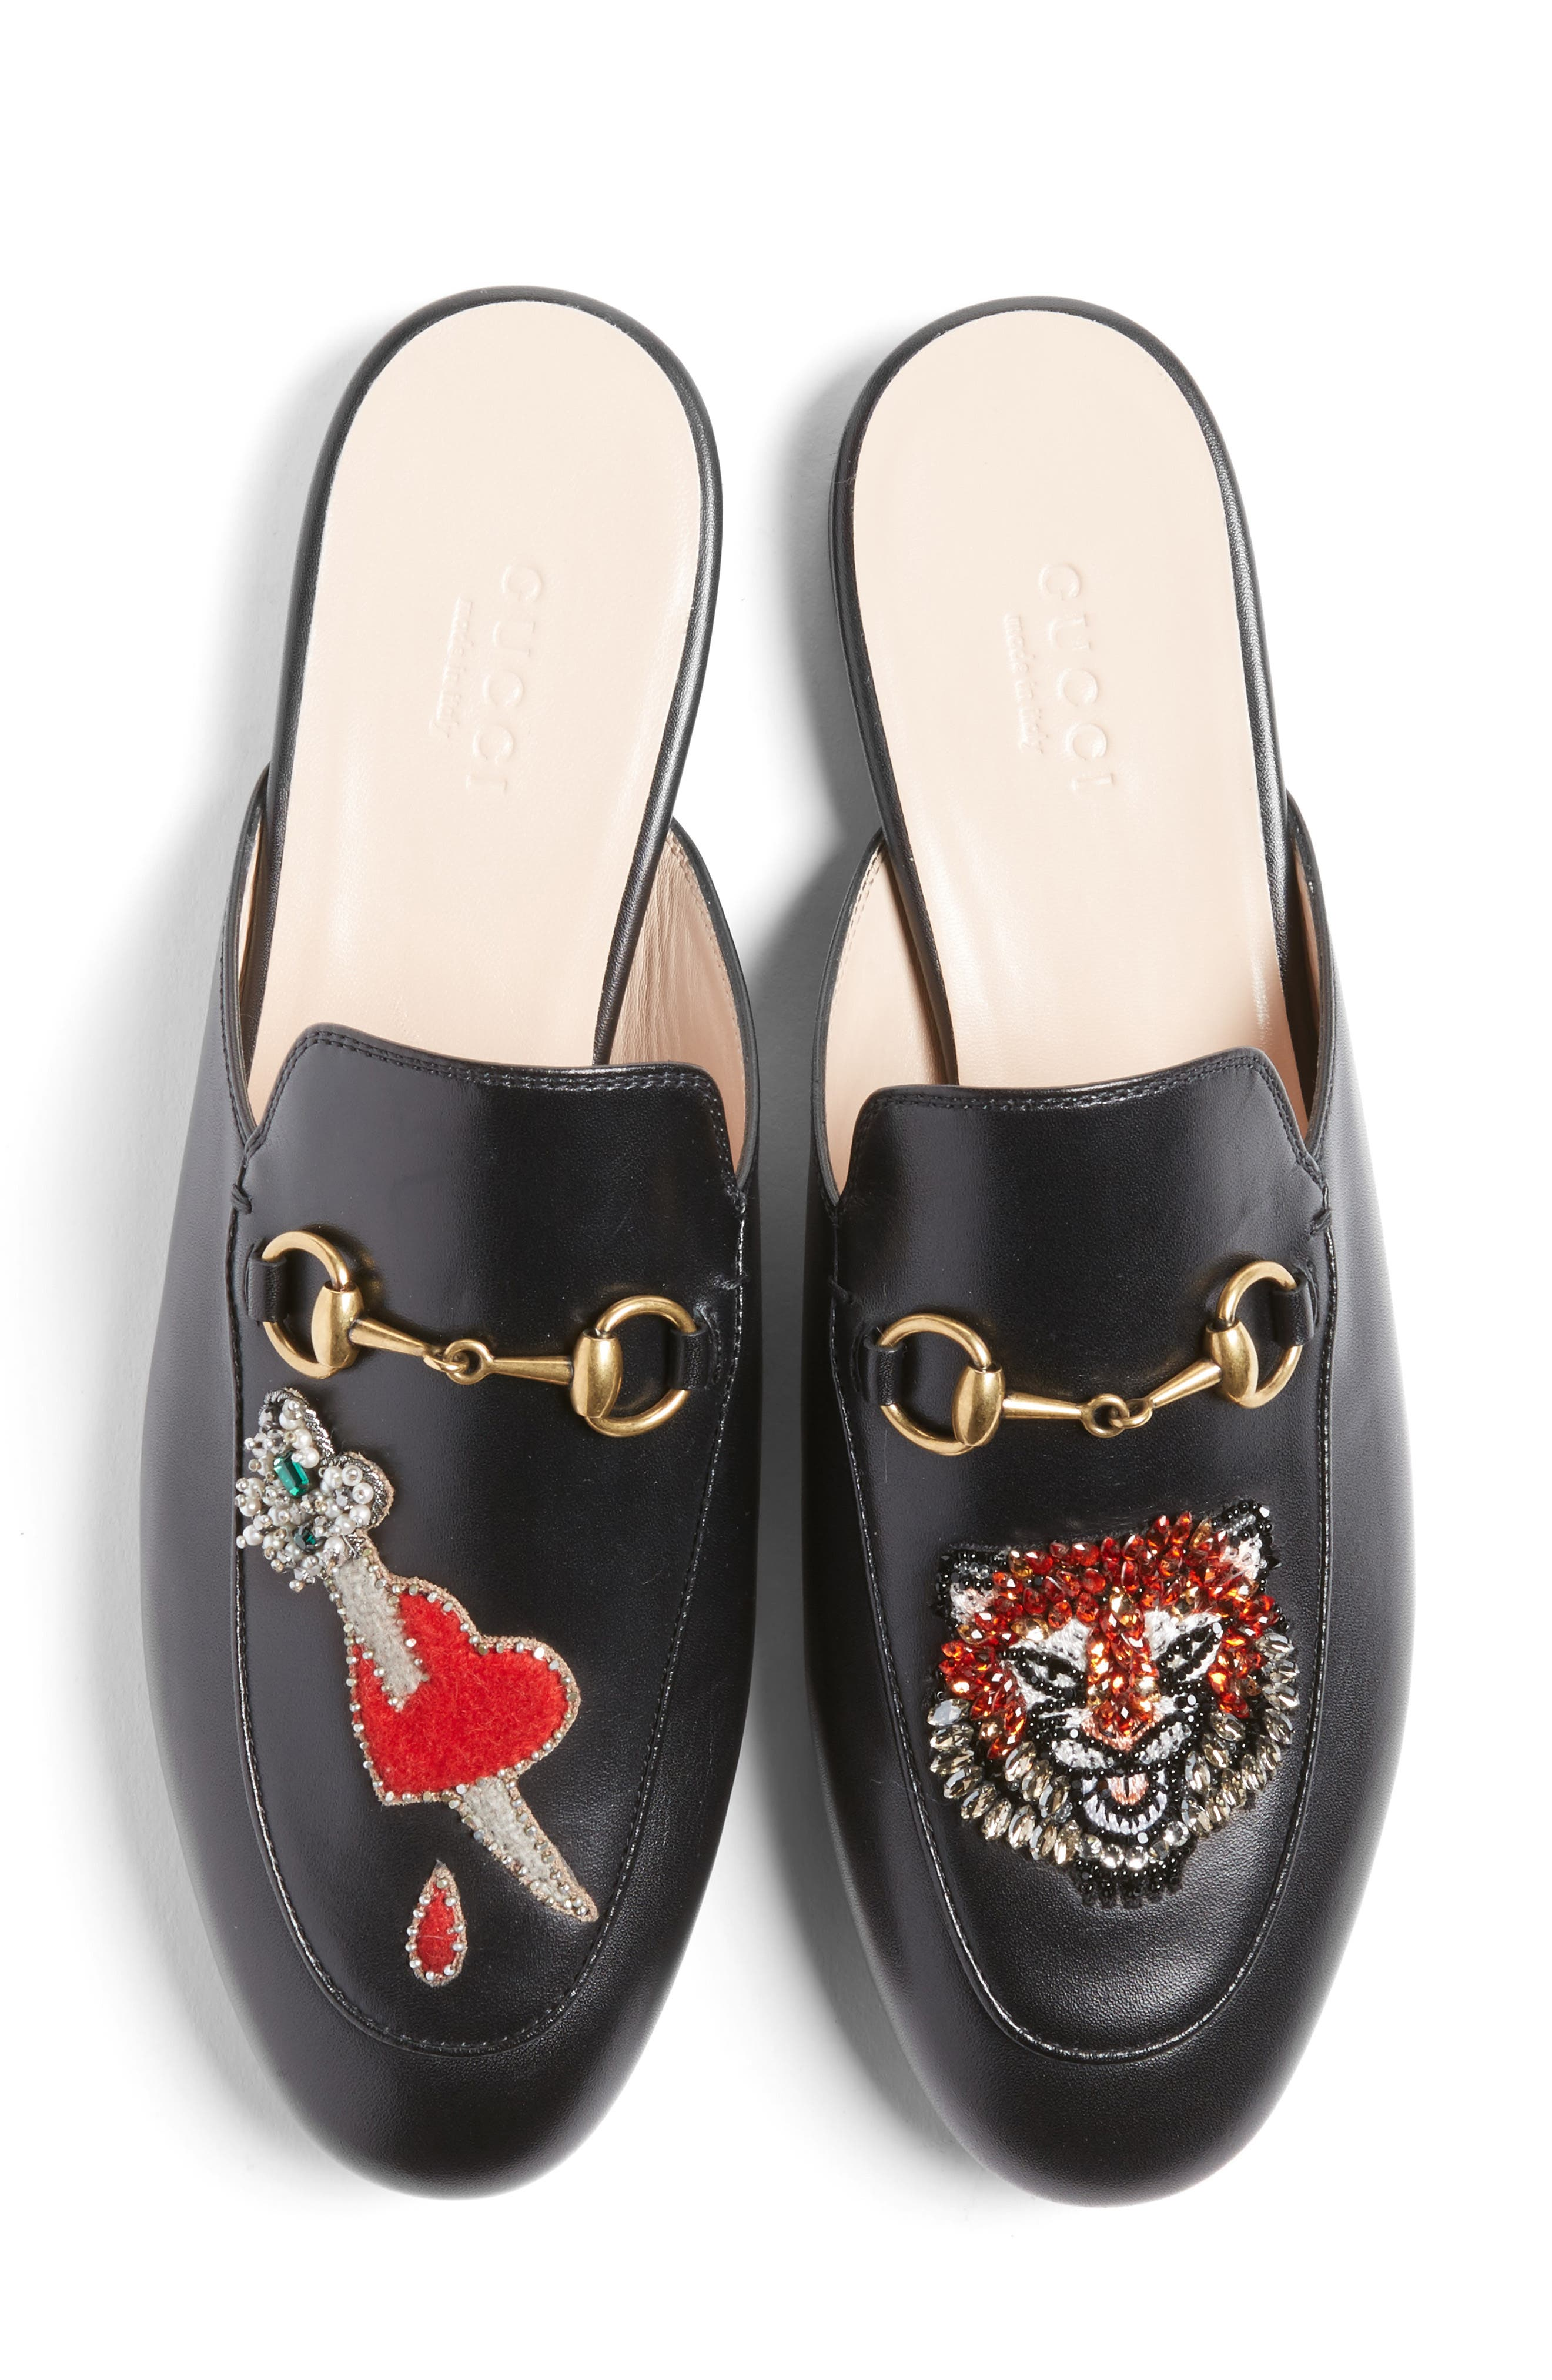 Main Image - Gucci Princetown Mule Loafer (Women)